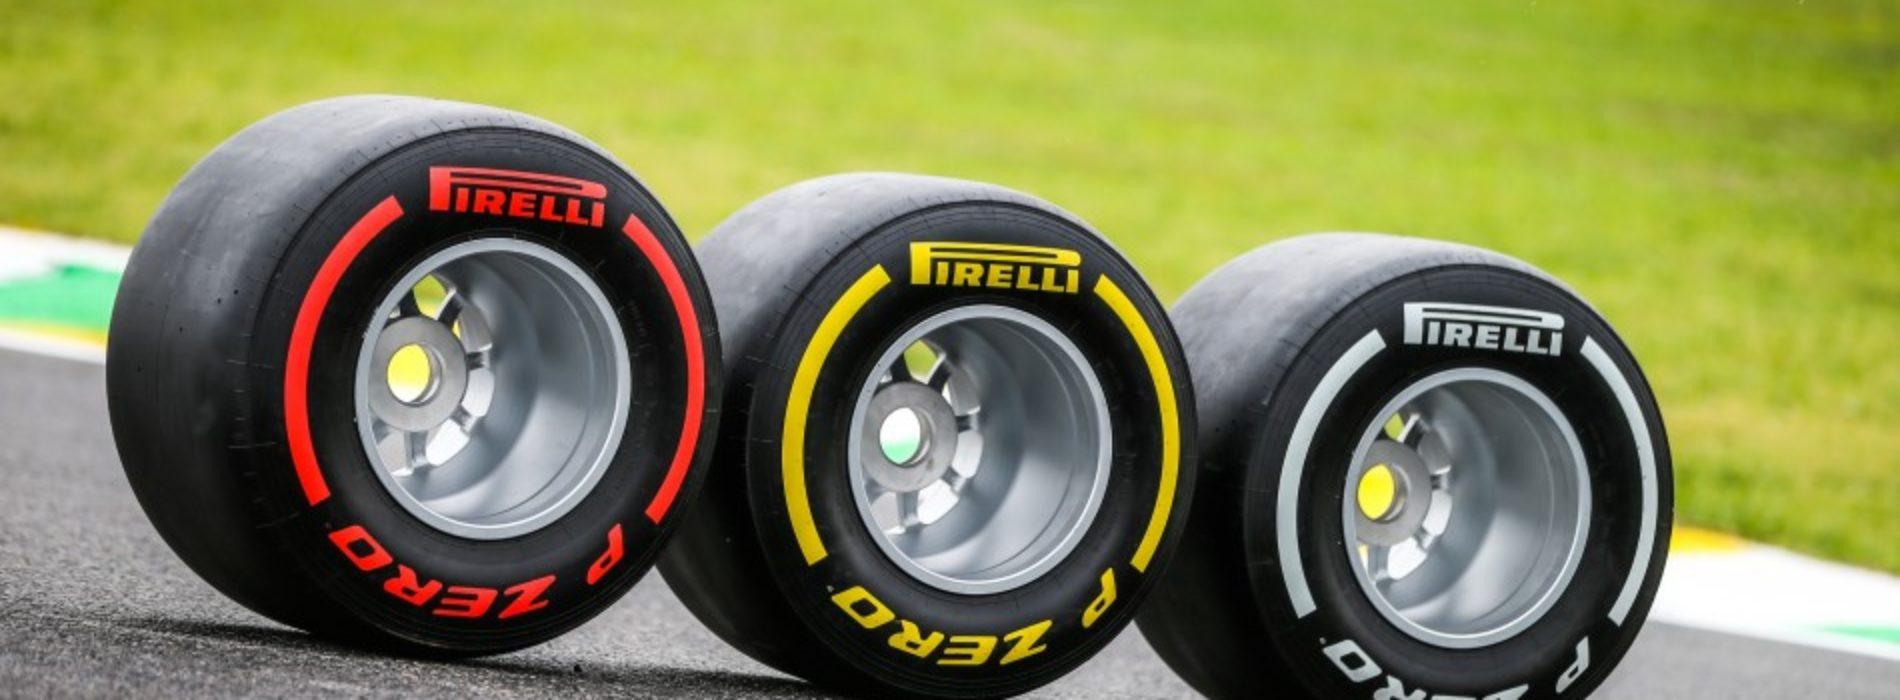 Insight on FIA rule change to run 18 inch wheels in Formula 2 for 2020- F1 in 2022